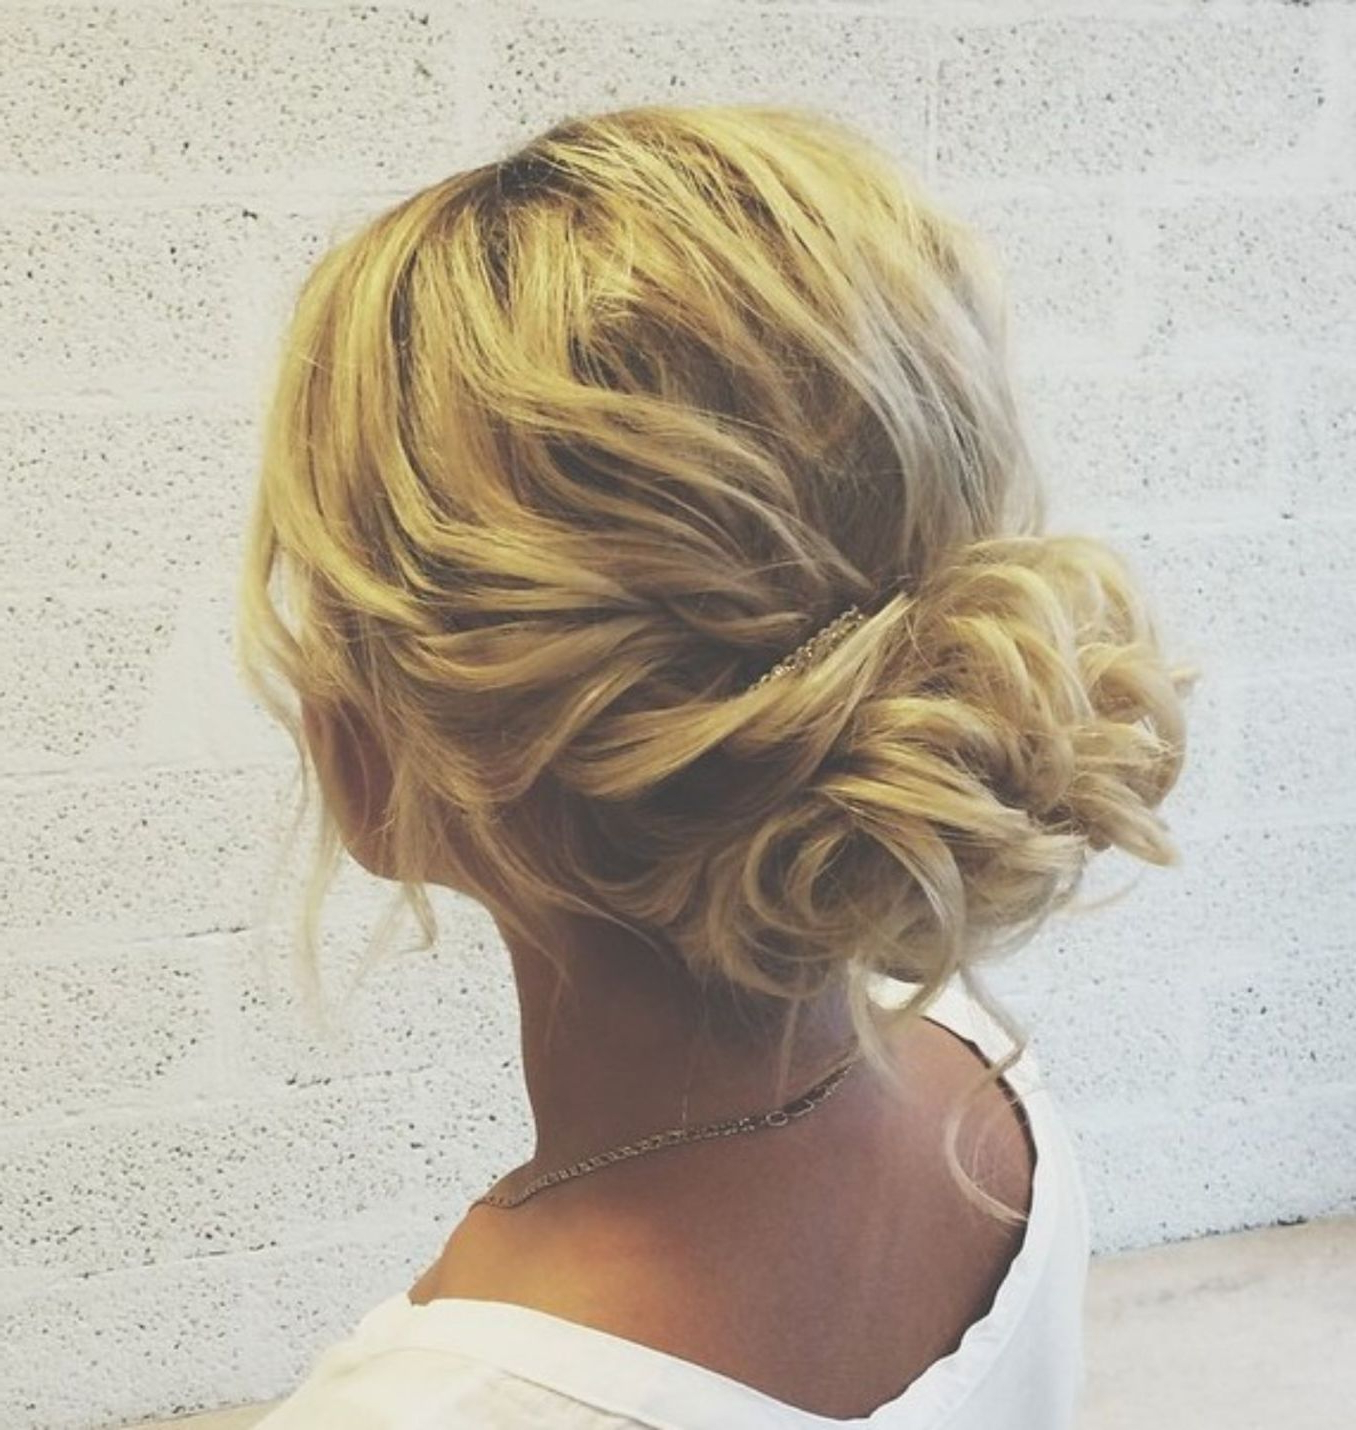 Outfit Intended For 2017 Curly Messy Updo Wedding Hairstyles For Fine Hair (View 19 of 20)